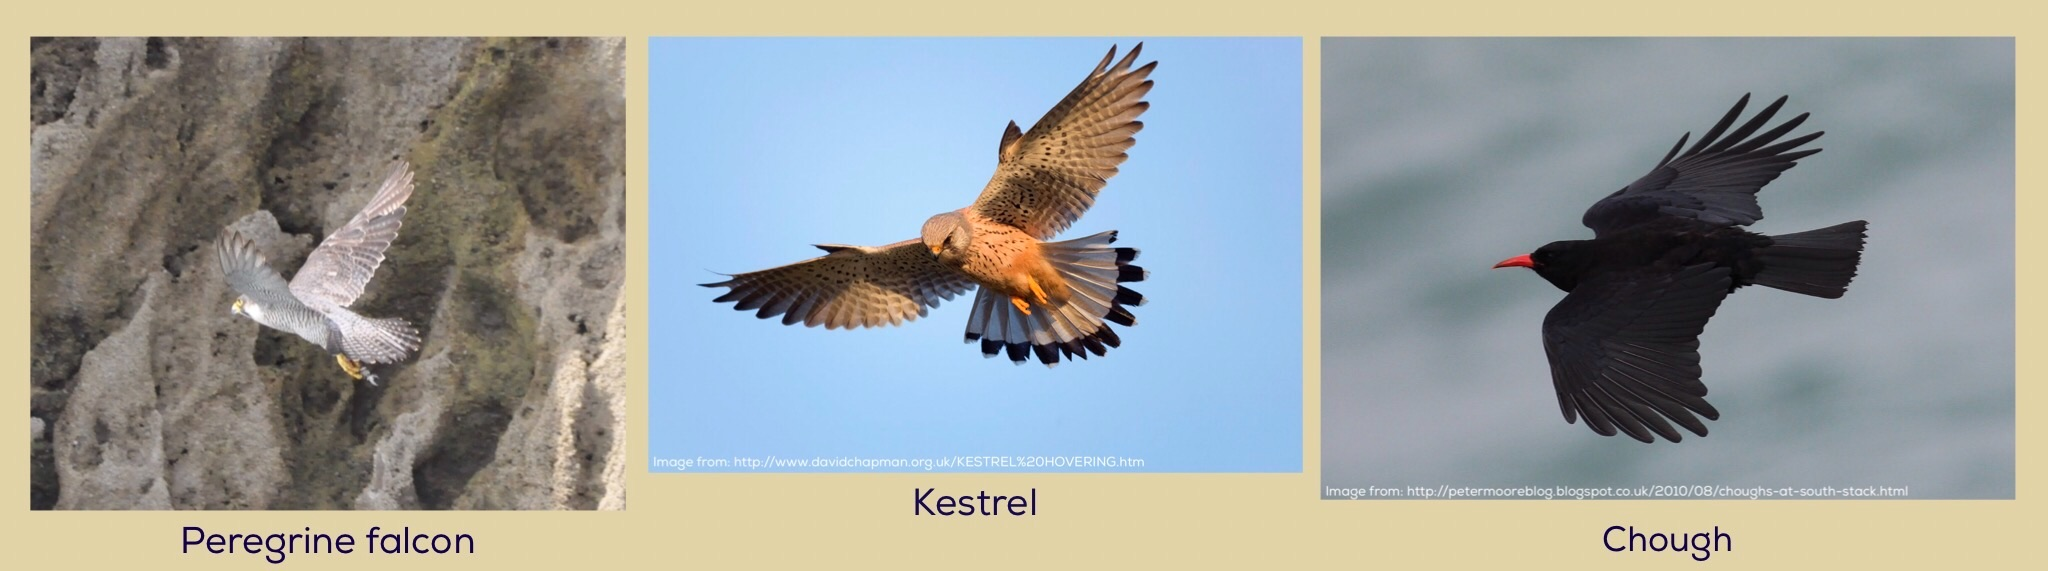 peregrine falcon kestrel chough